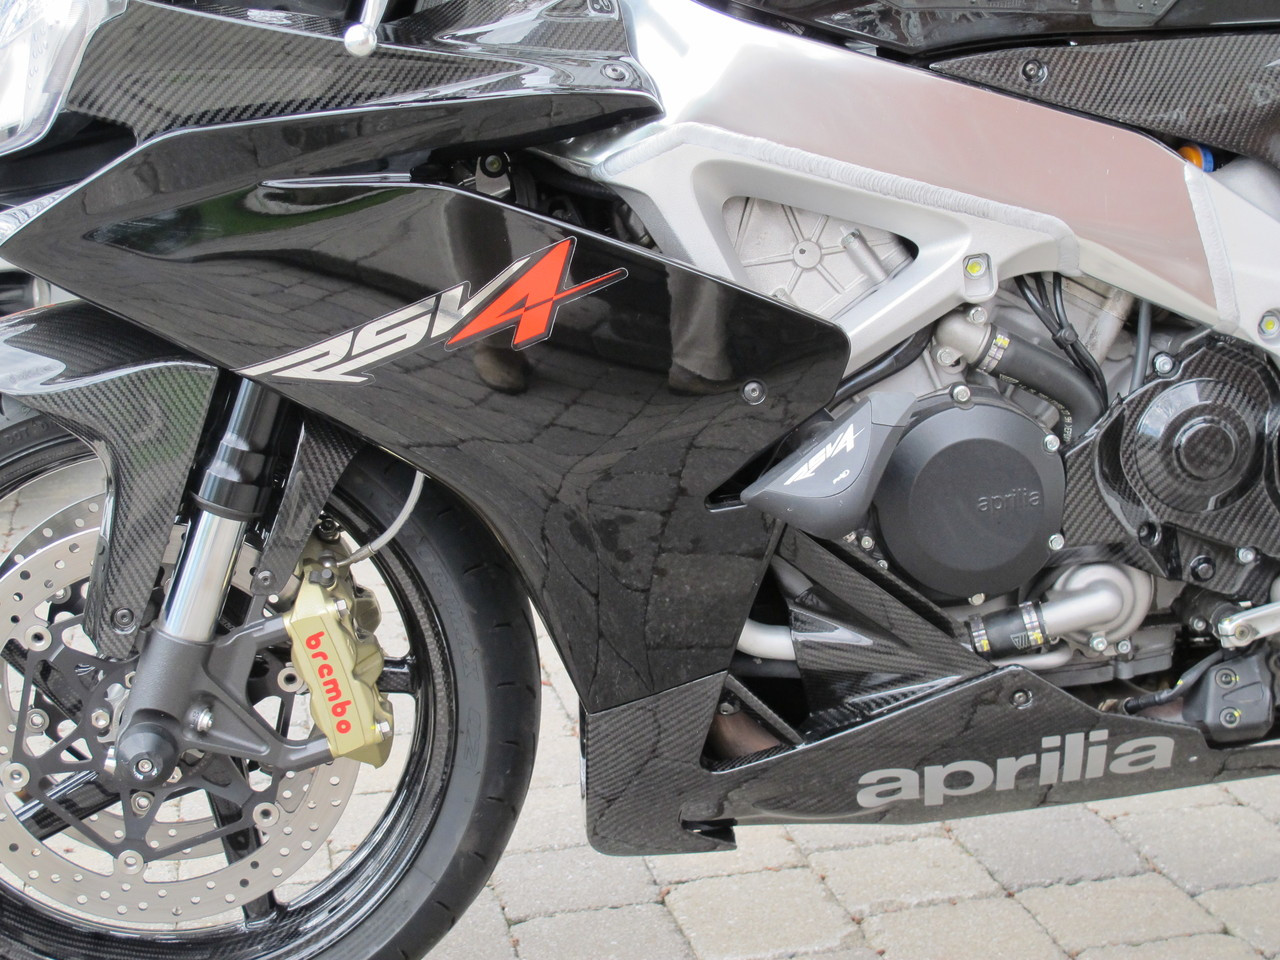 Belly Pan (with heat foil) and Pullers in Glossy Twill Weave Carbon Fiber for Aprilia RSV4 2009+ installed